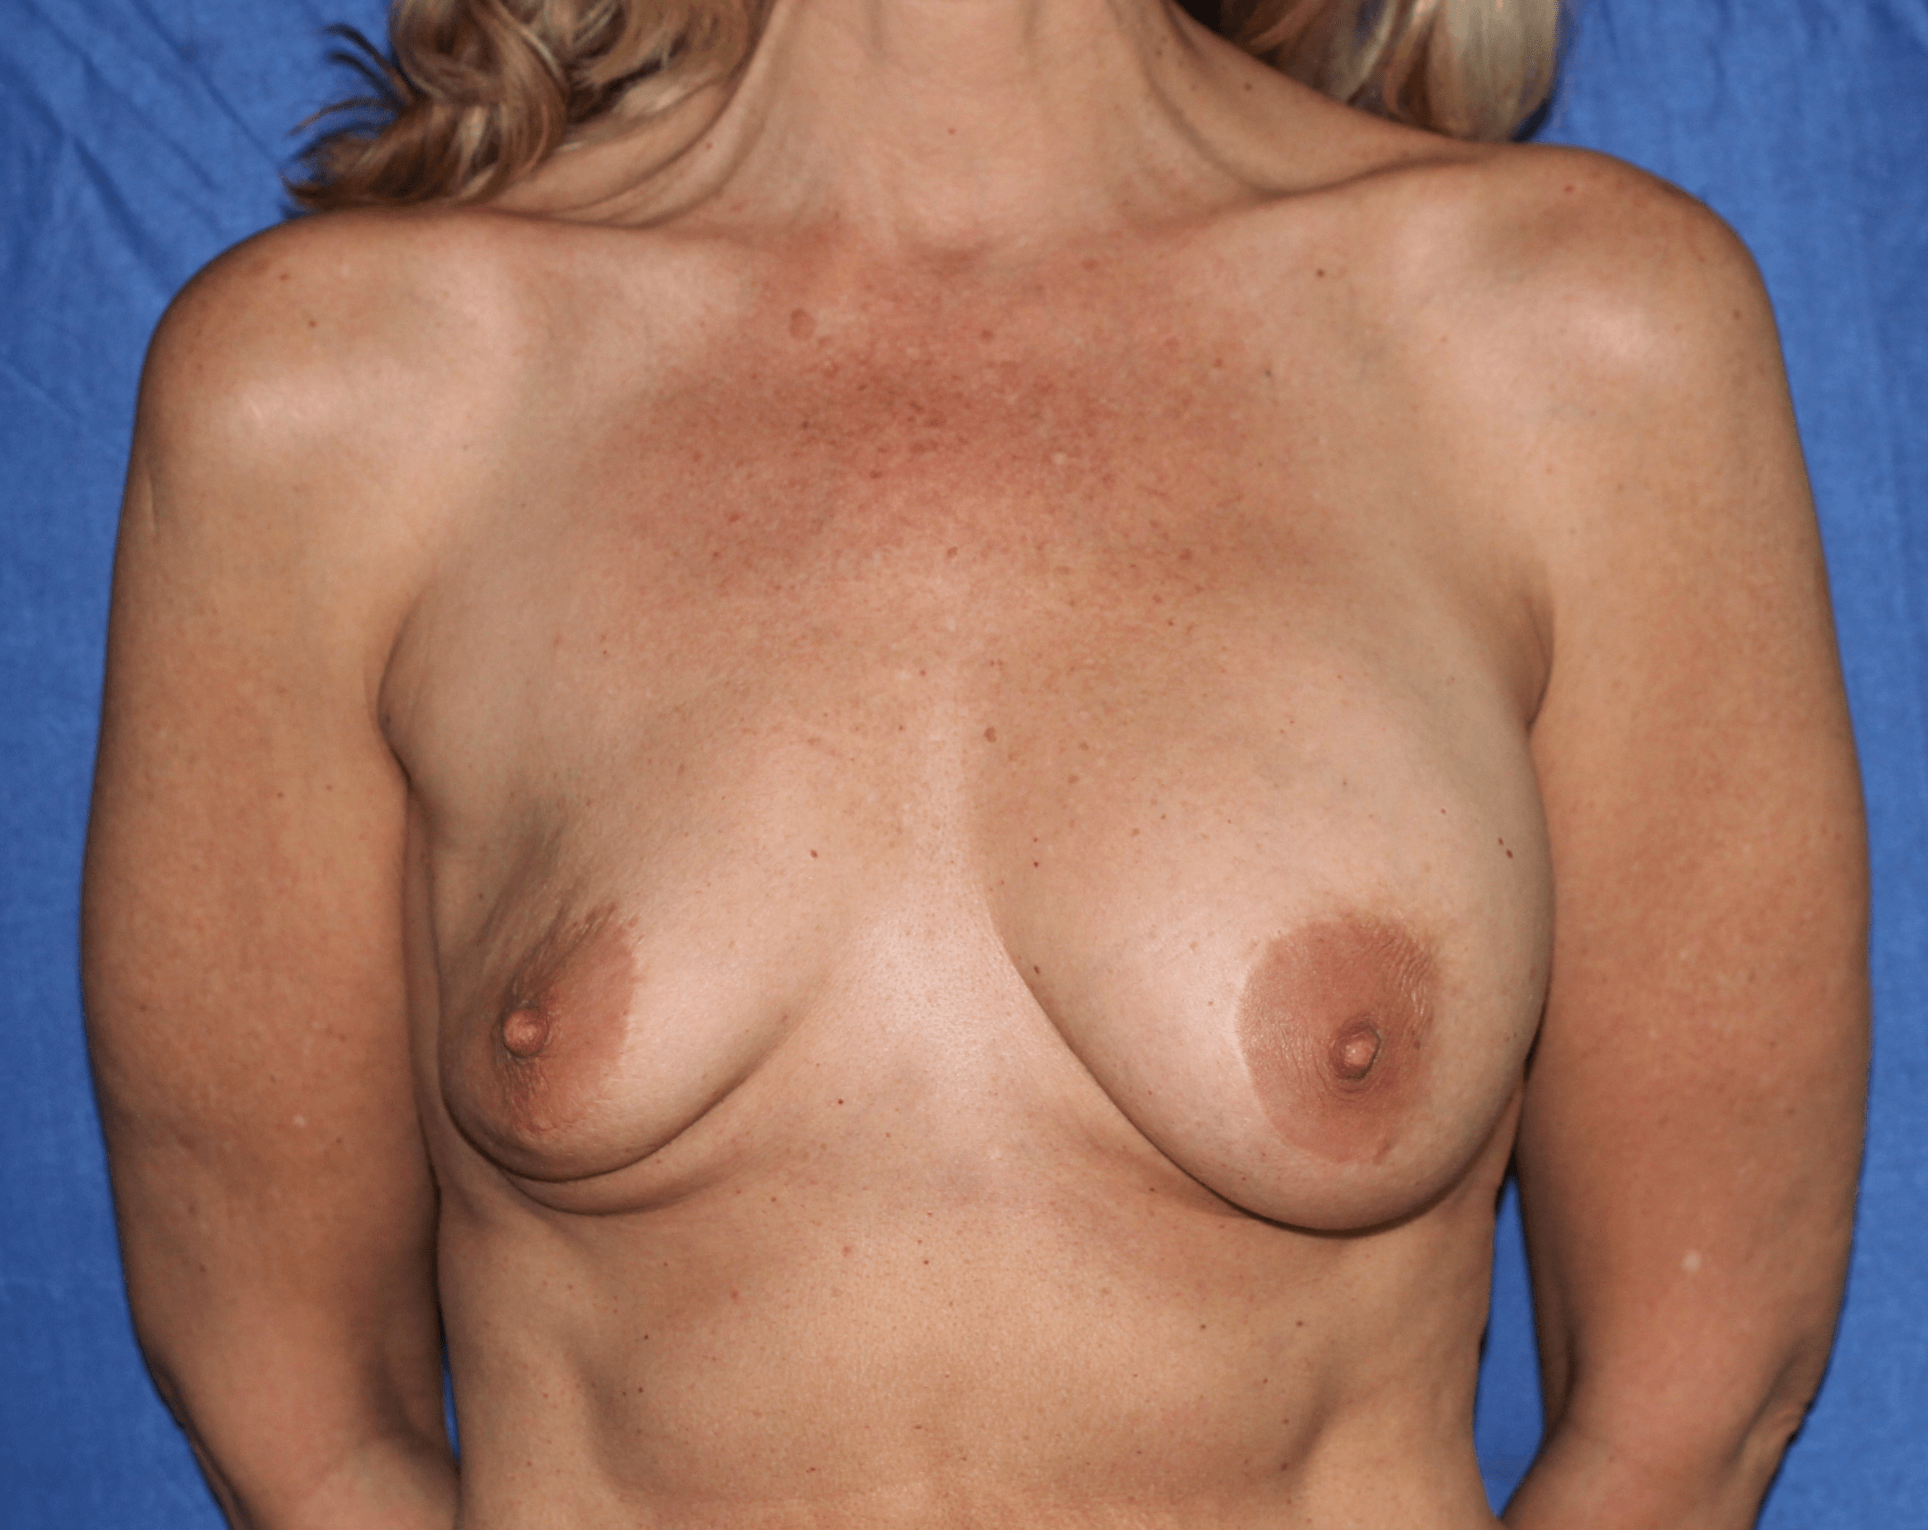 Breast implant rupture. Before